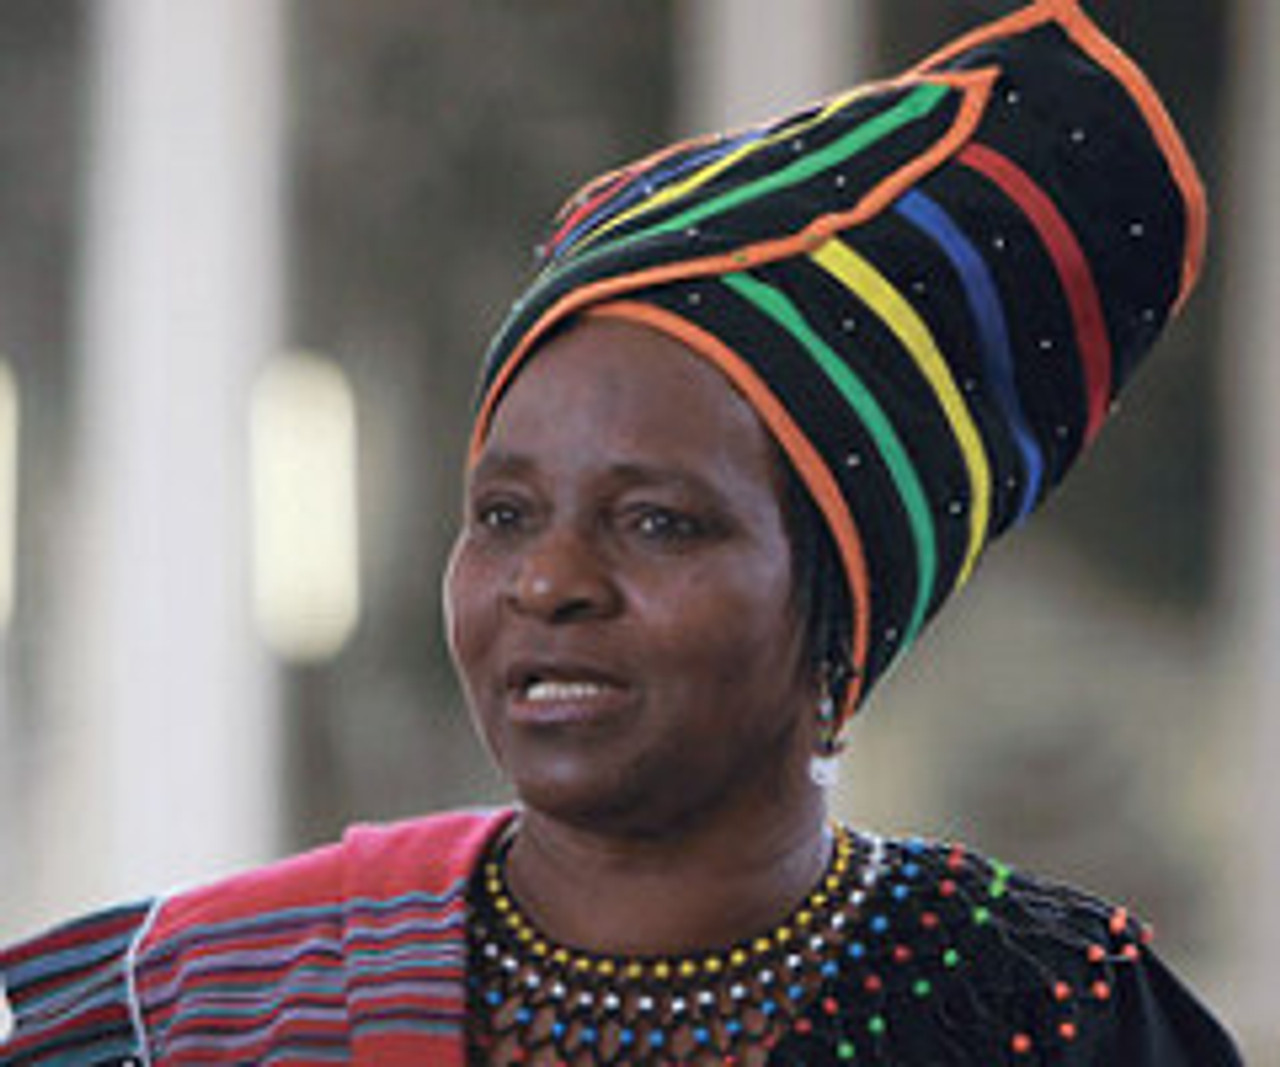 When Colonialism and Feminism Clash: Looking Towards an Empowered Future in South Africa